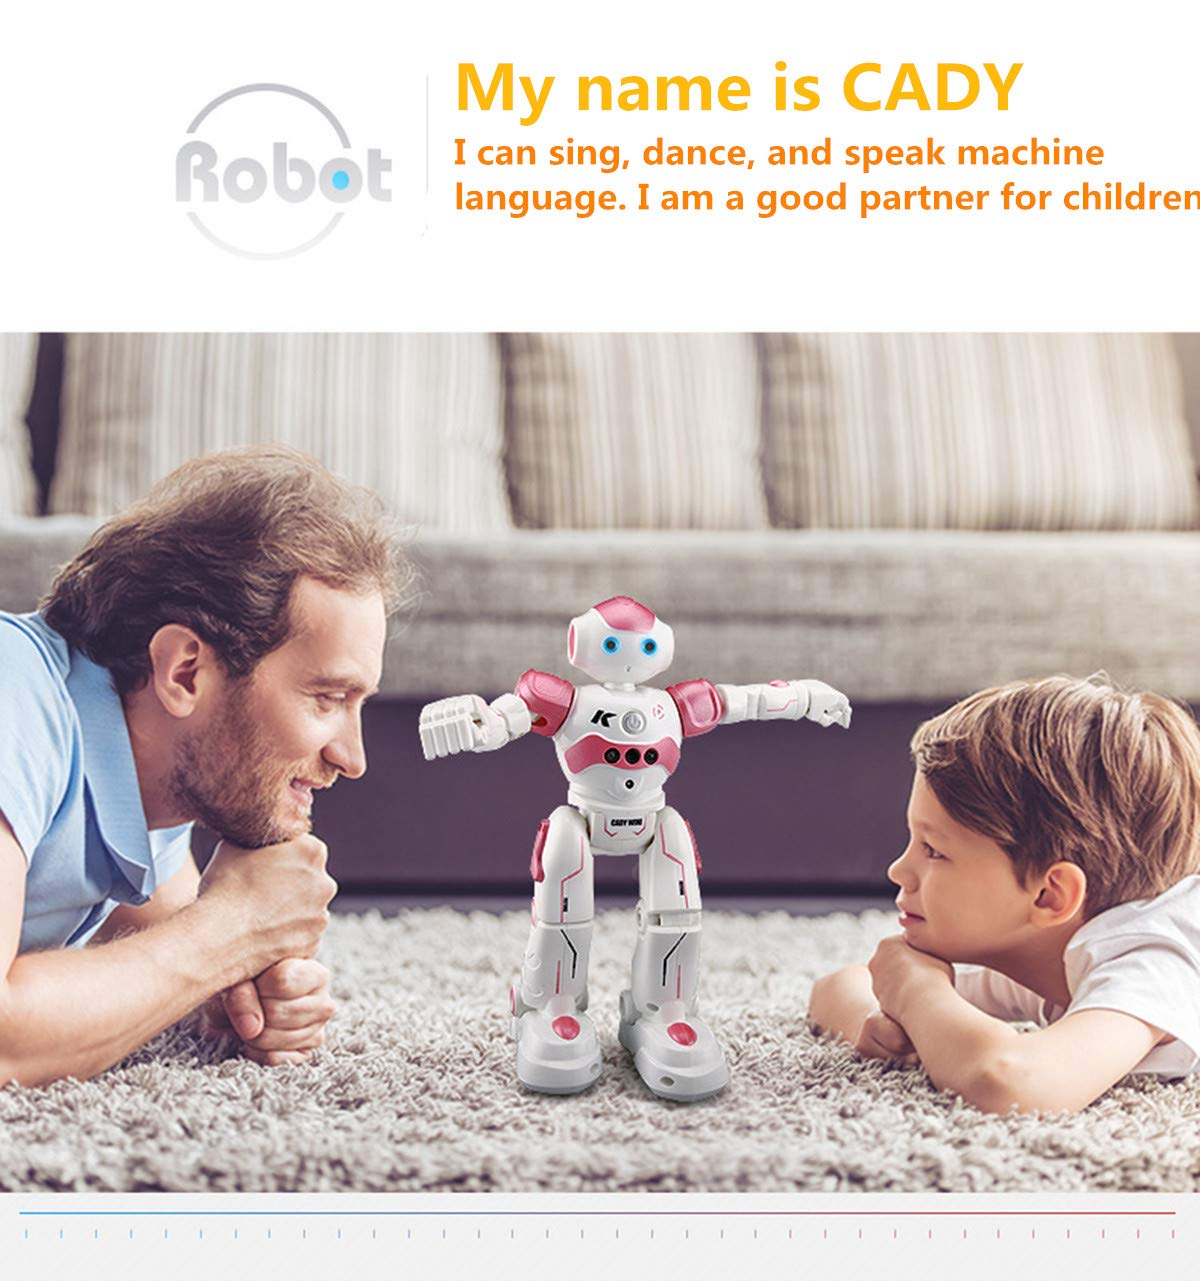 WEECOC Smart Robot Toys Gesture Control Remote Control Robot Kids Toys Birthday Can Singing Dancing Speaking Two Walking Models (White) by WEECOC (Image #10)